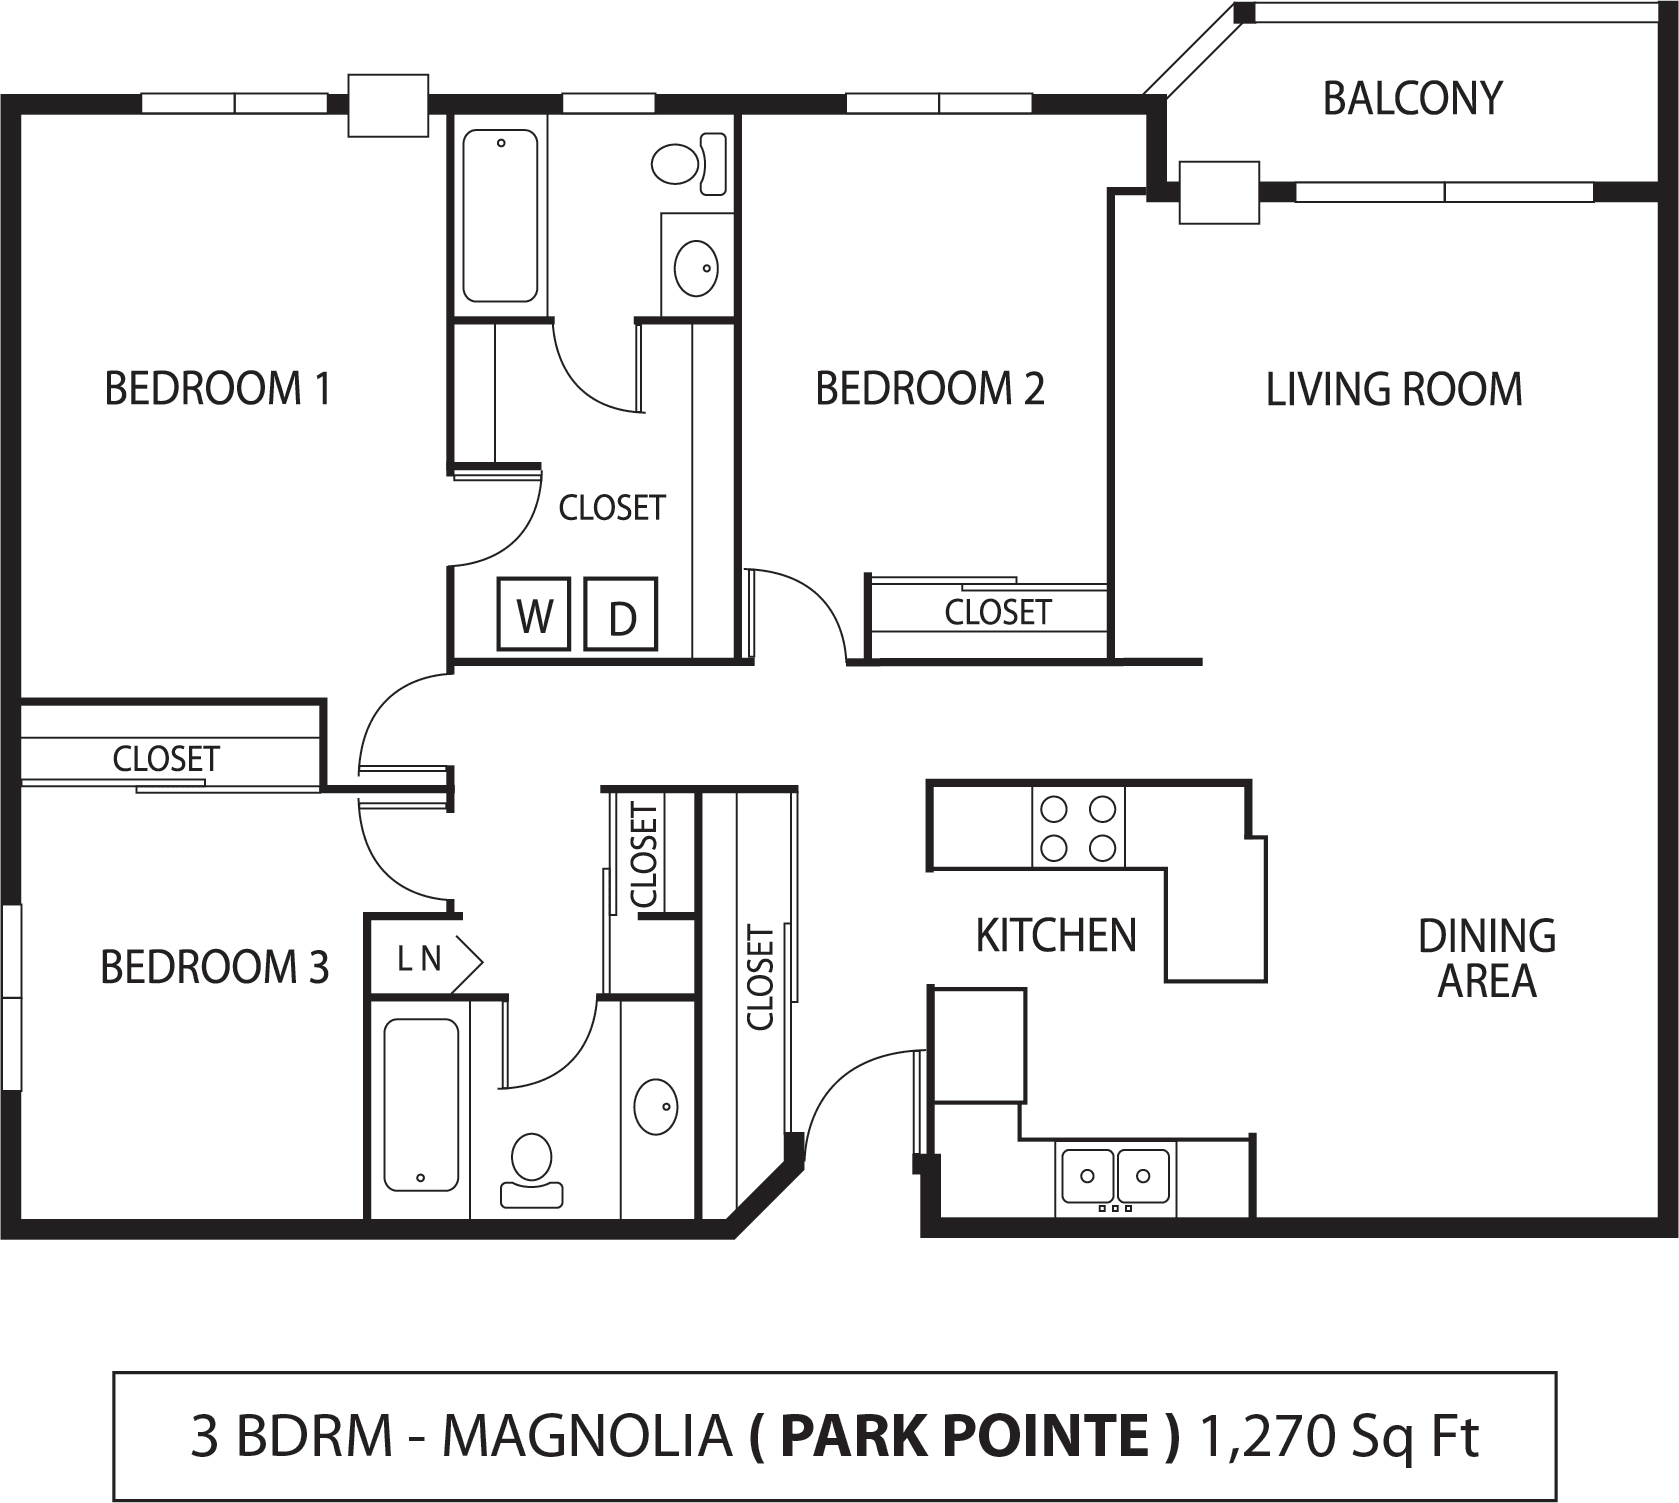 Floor Plan  Park Pointe Apartments in St. Louis Park, MN  3 Bedroom 2 Bath